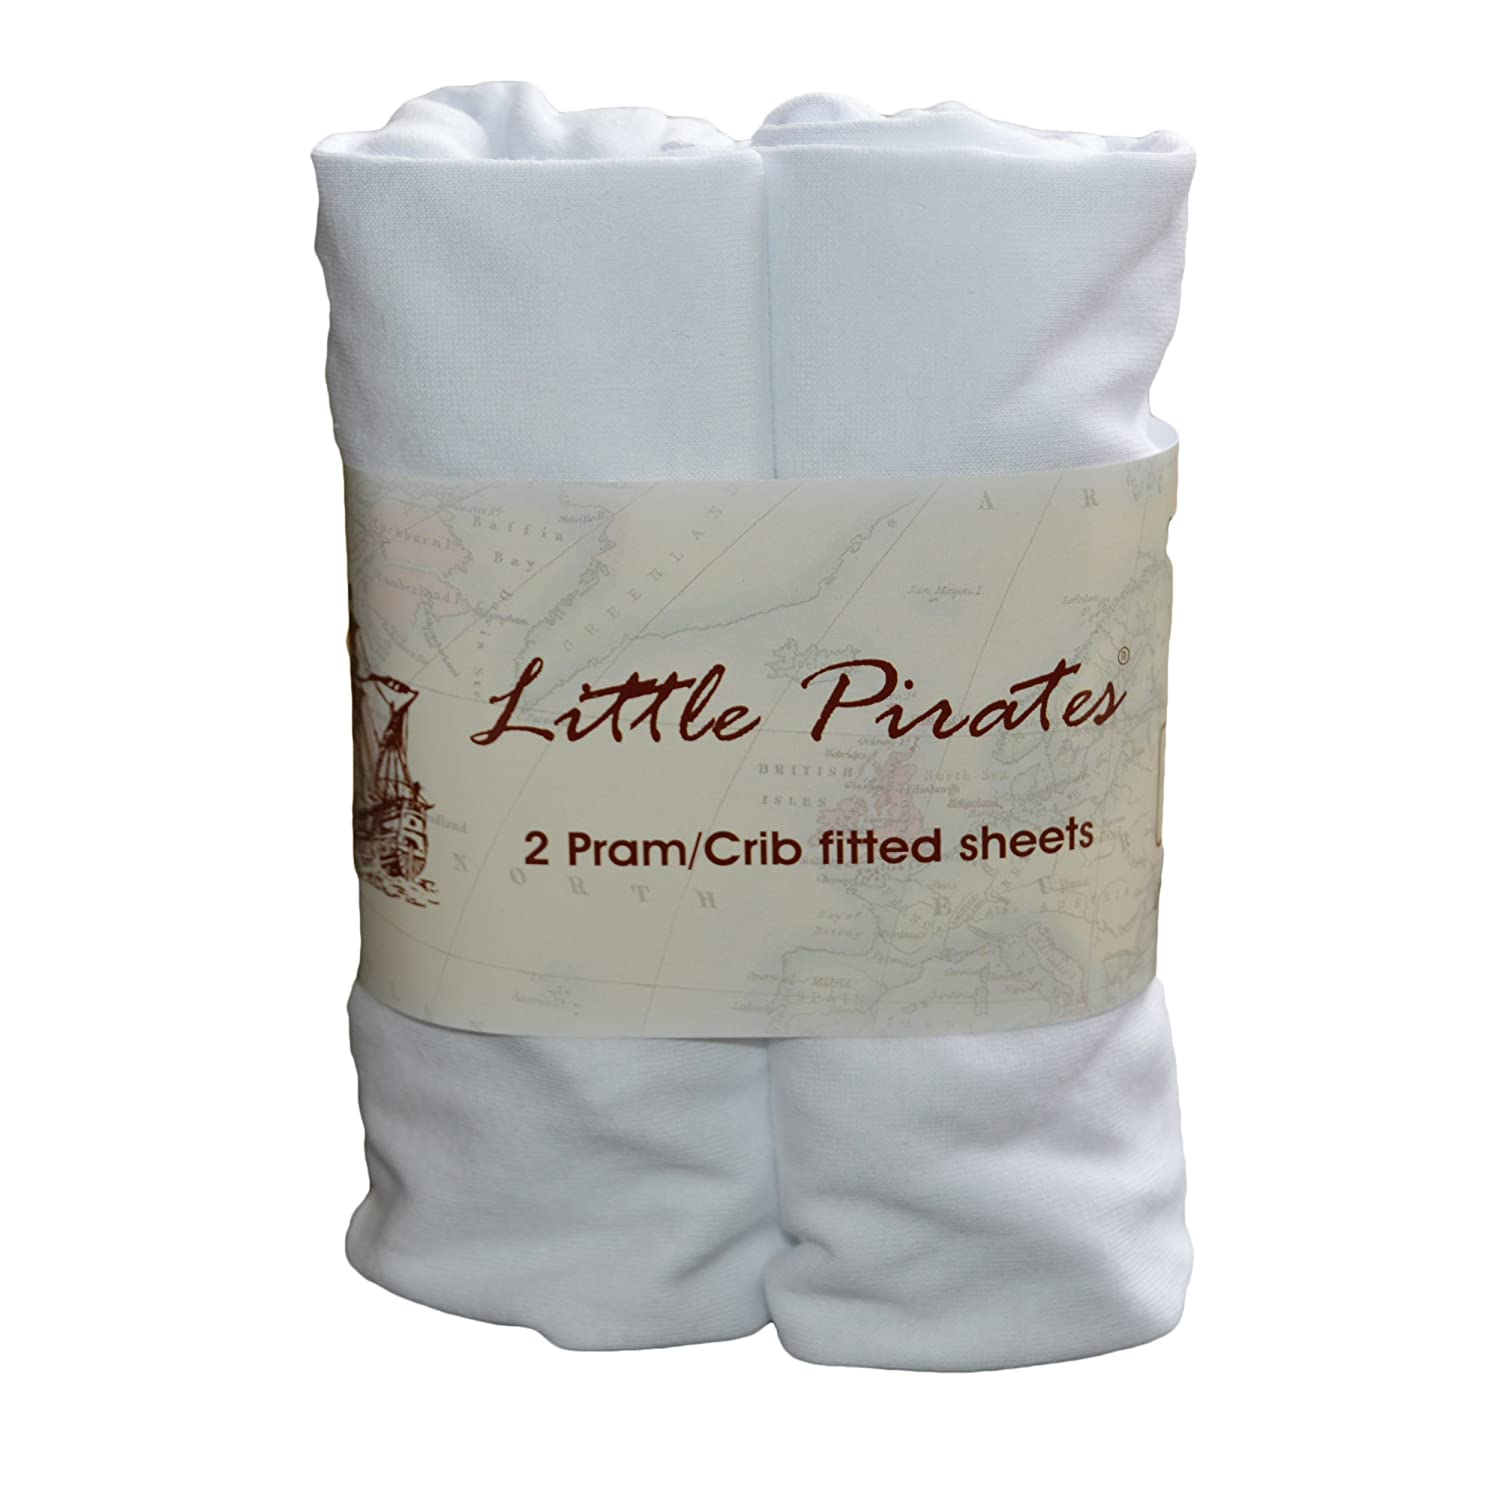 Baby Bassinet Cradle Jersey Fitted Sheet 100% Cotton White 15x33 inches by Little Pirates Bobbico Ltd